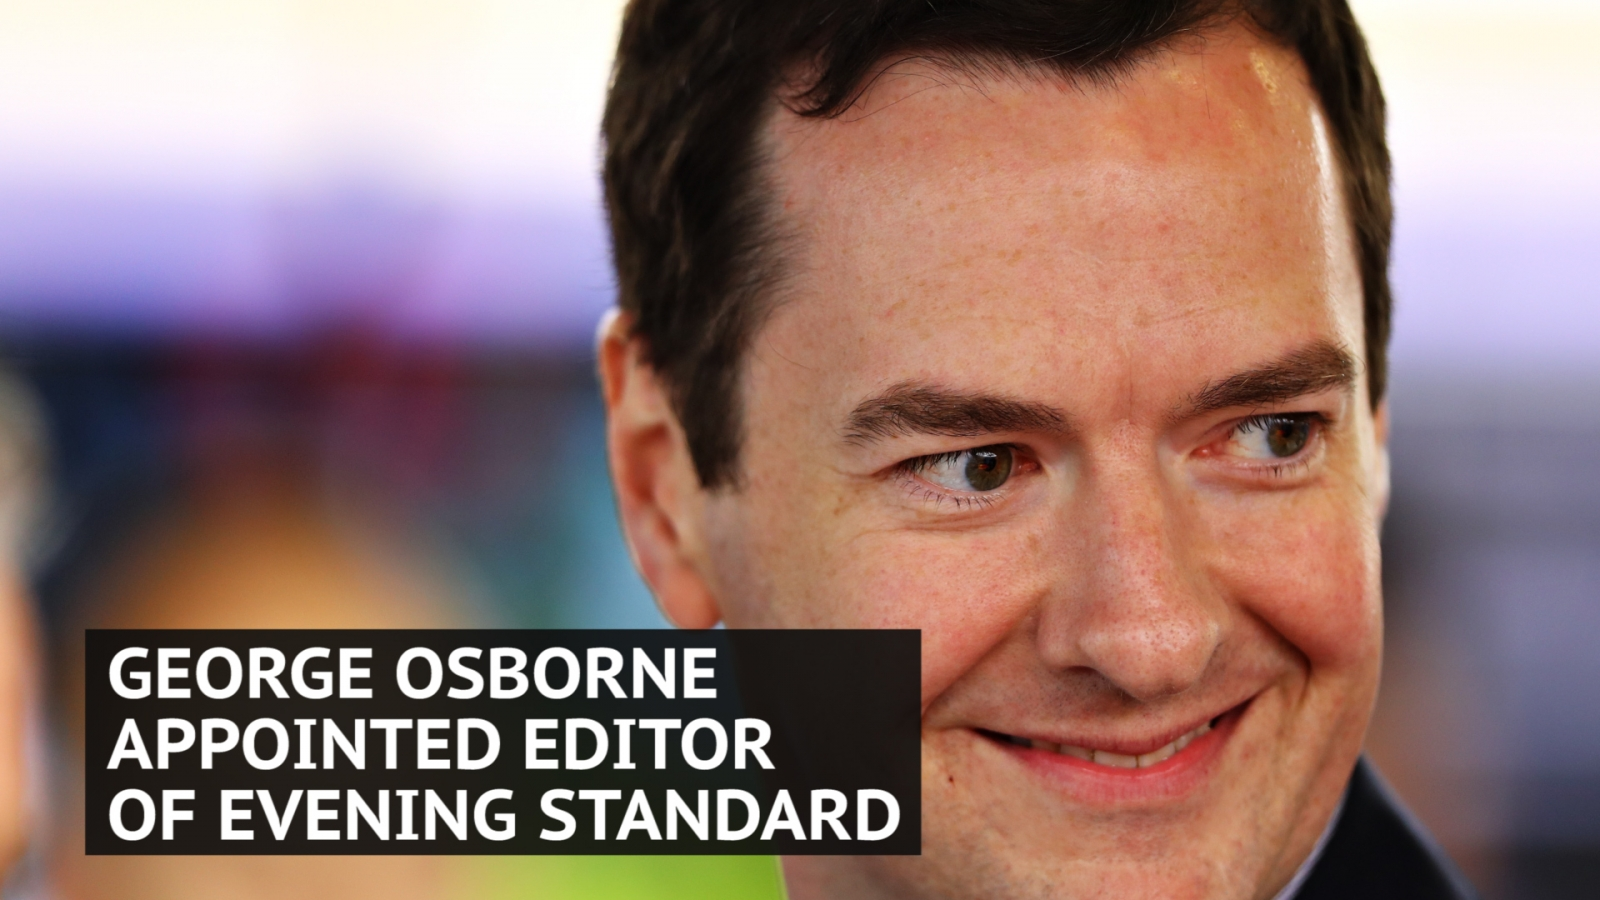 Former chancellor George Osborne appointed editor of Evening Standard